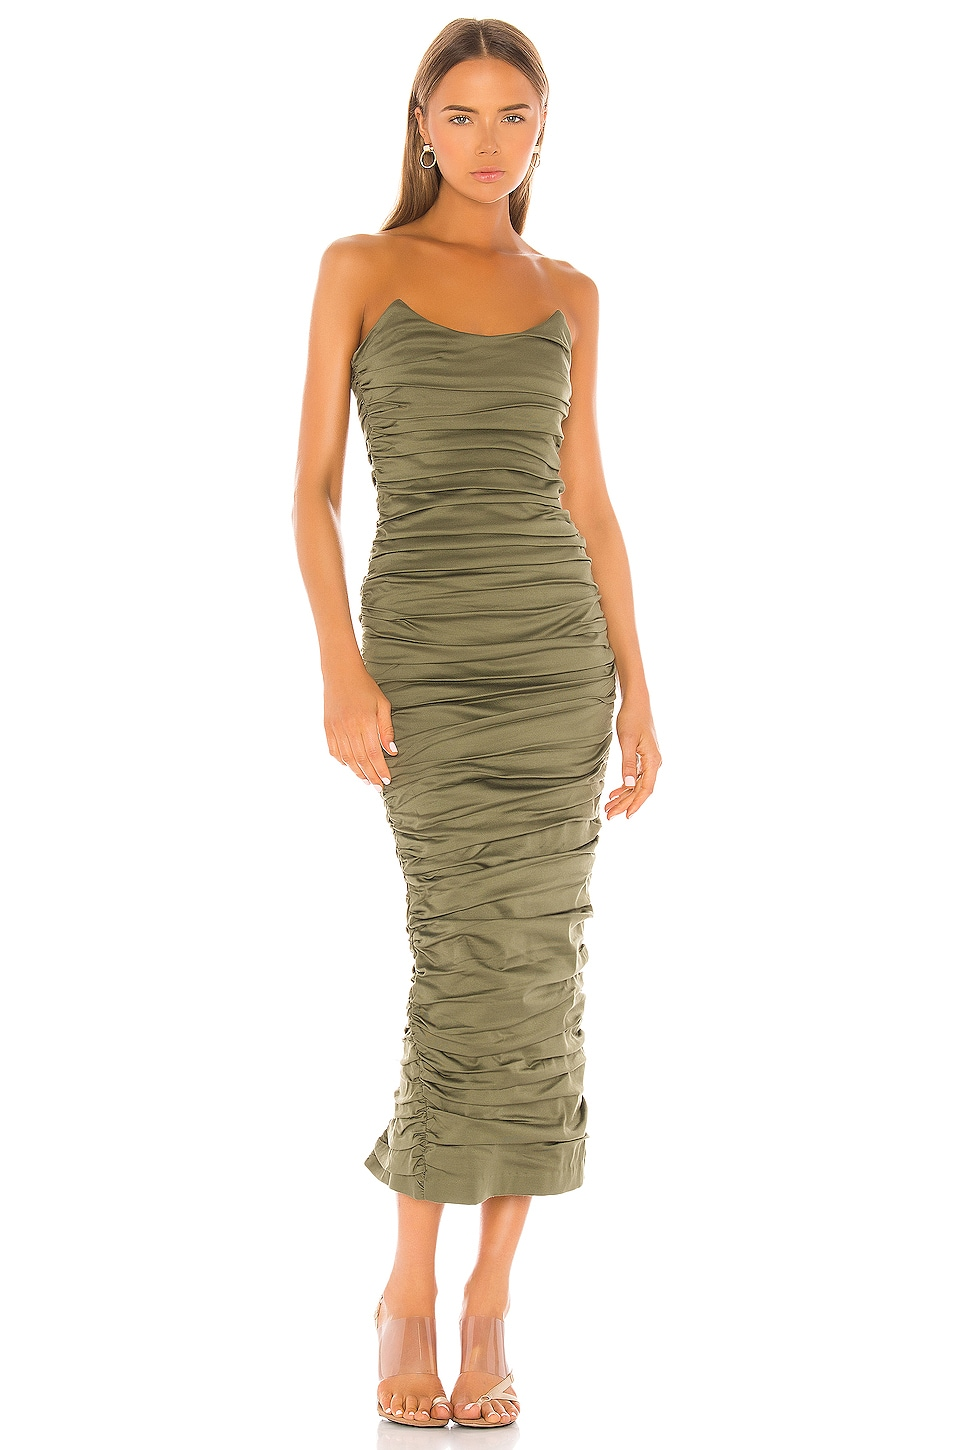 Miaou Angelina Dress in Olive